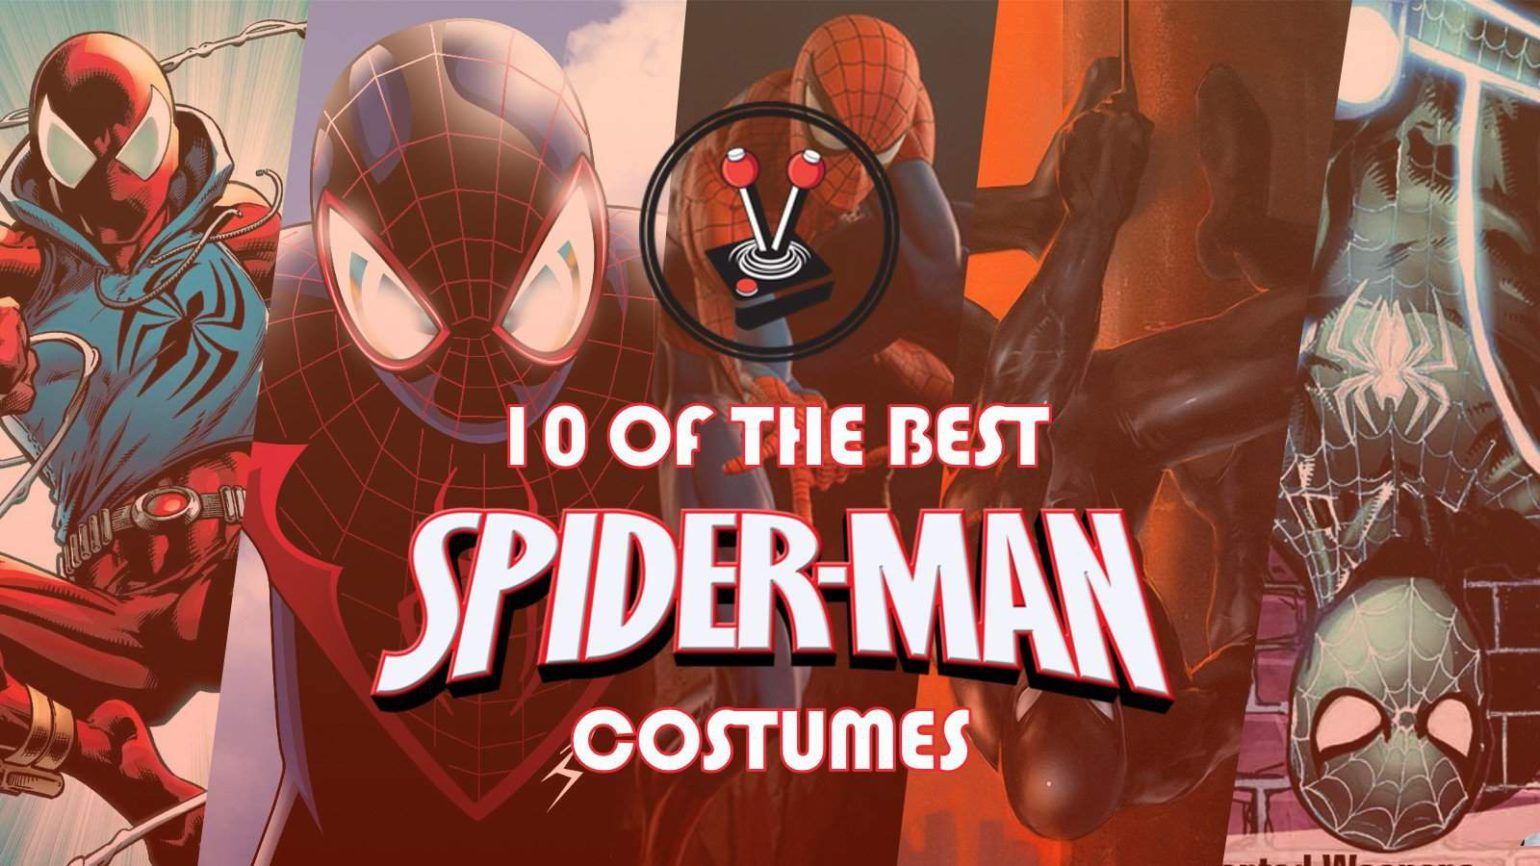 Marvel's official list of Spider-Man's 10 best costumes is good, but it could be better. So here is a new list of 10 of the best Spider-Man Costumes.